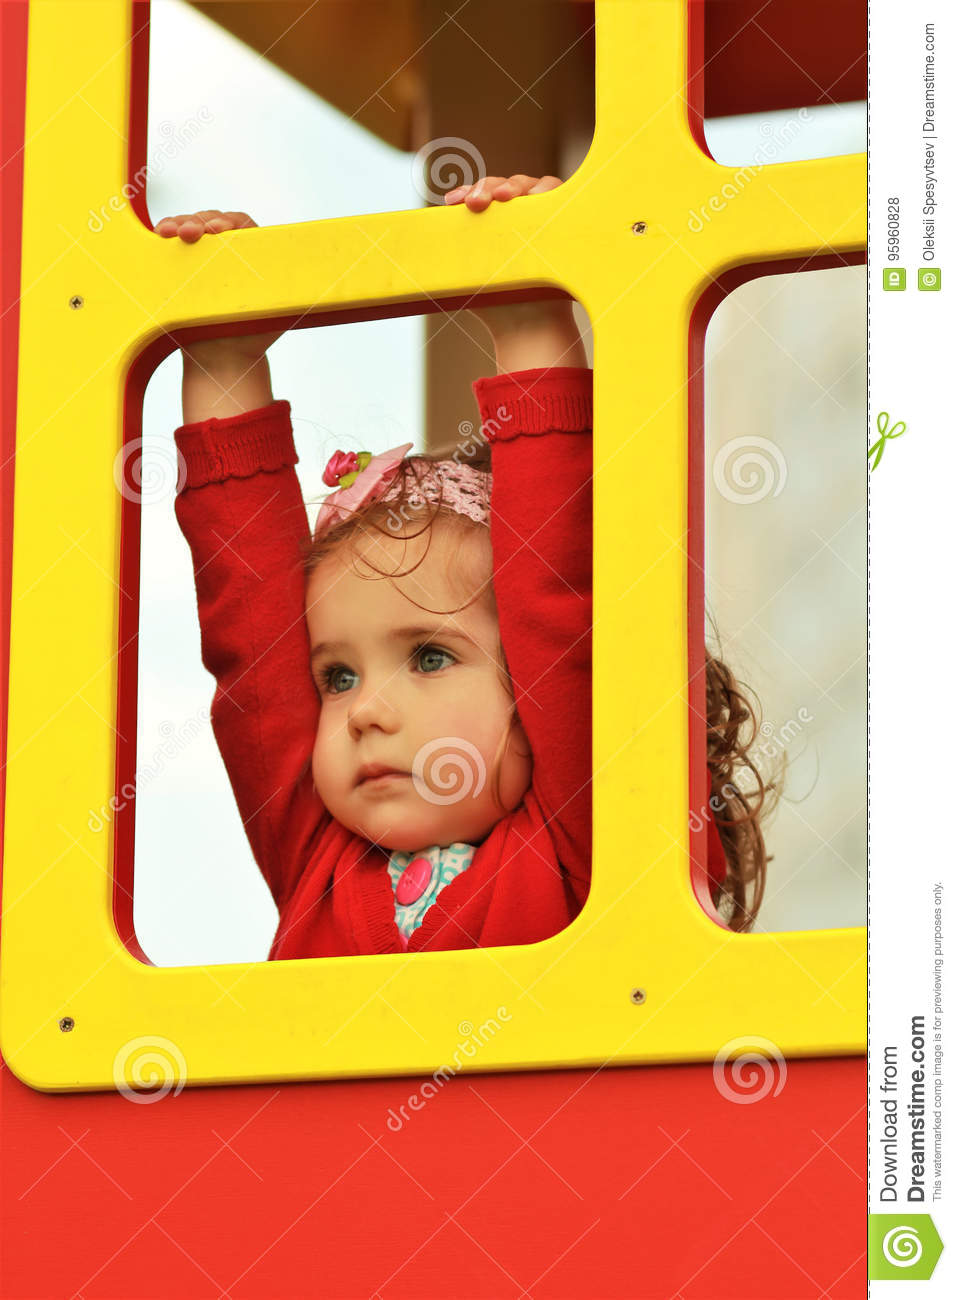 Thoughtful little girl in red looking in the distance out of a window of a colorful wooden house